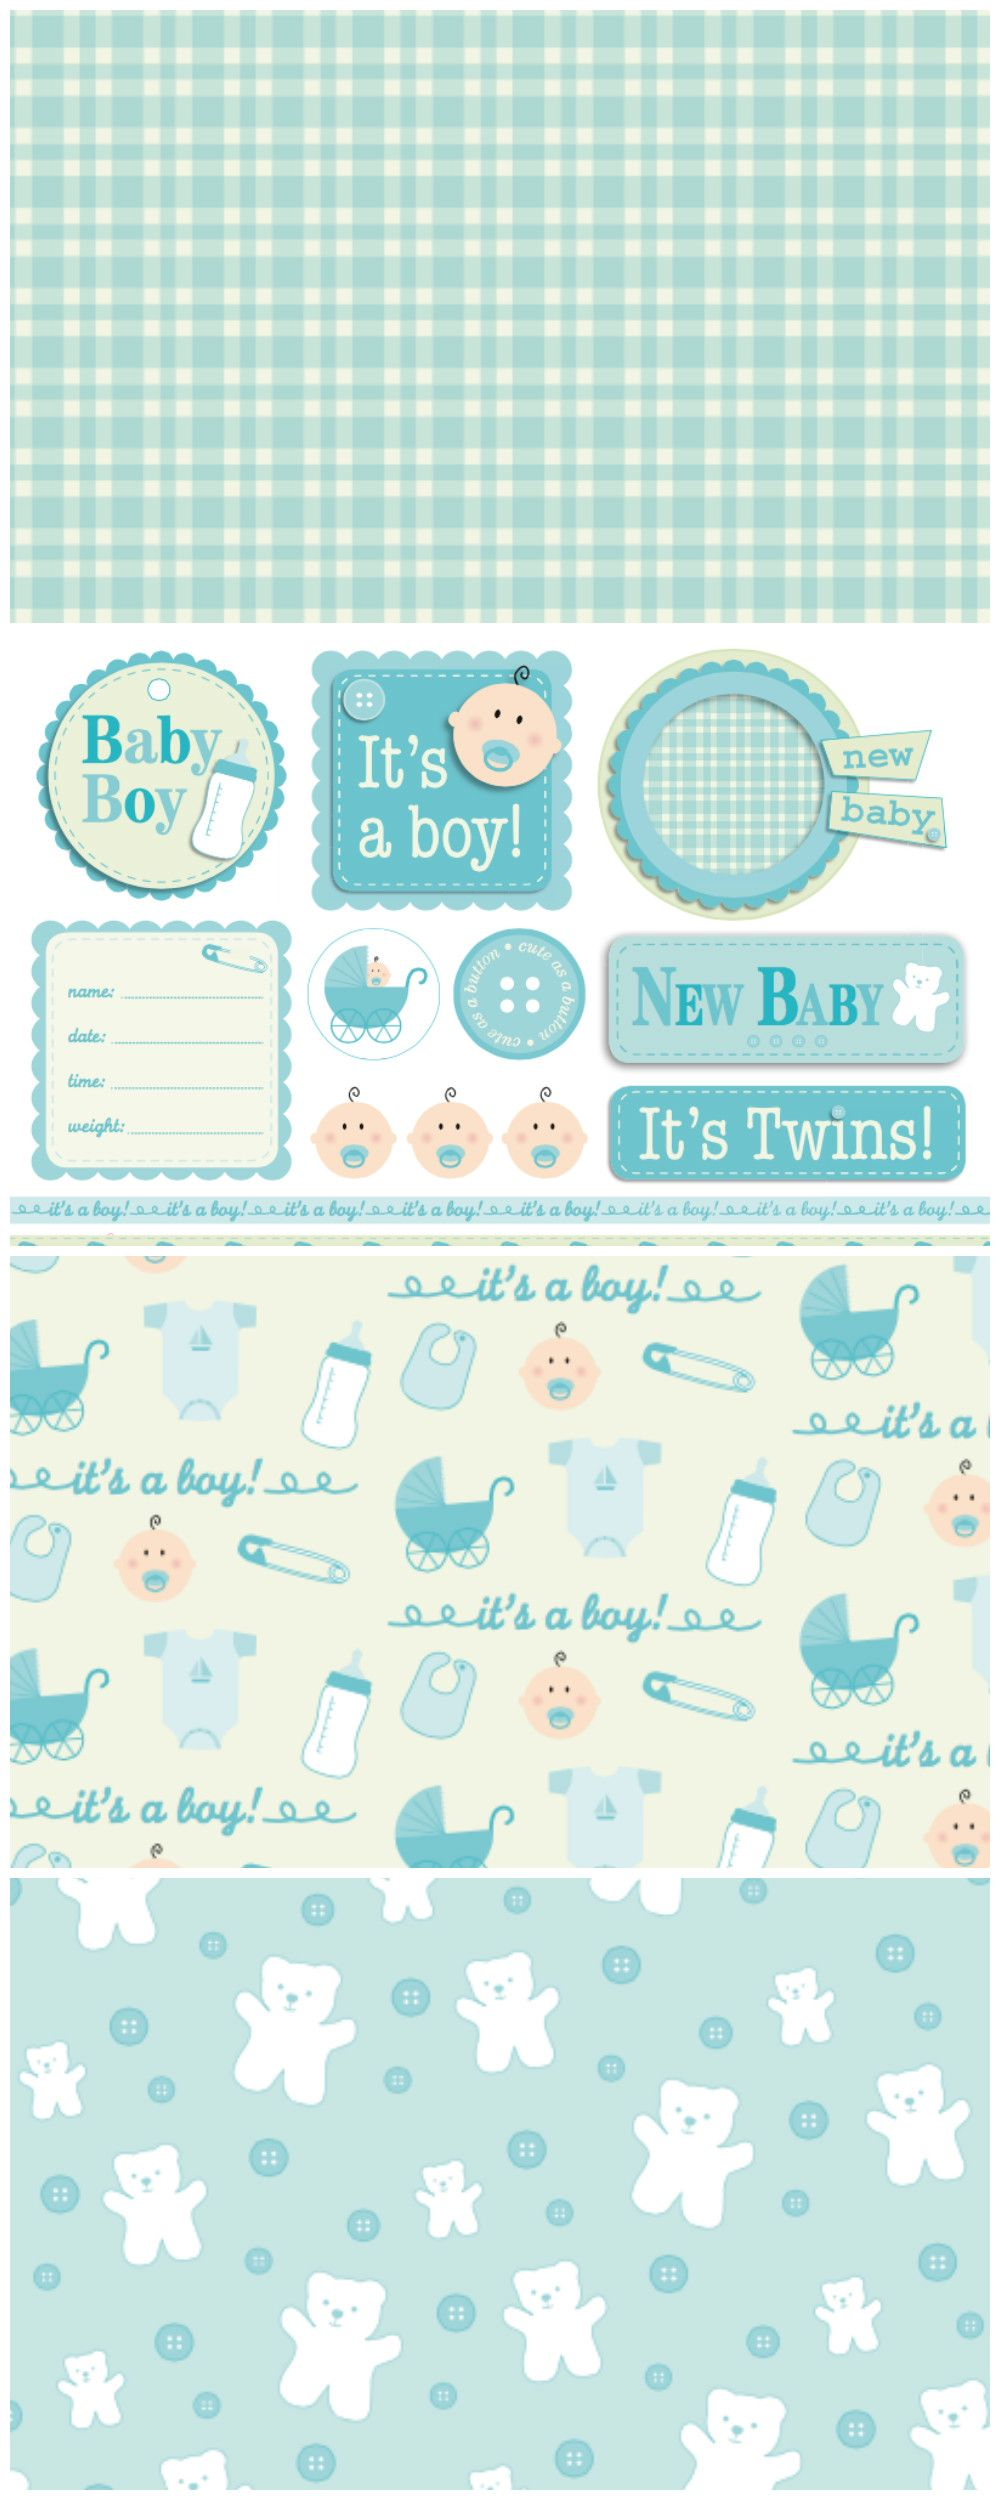 Free Classic New Baby Patterned Papers Boy Scrapbook Paper Baby Cards Handmade Baby Boy Scrapbook